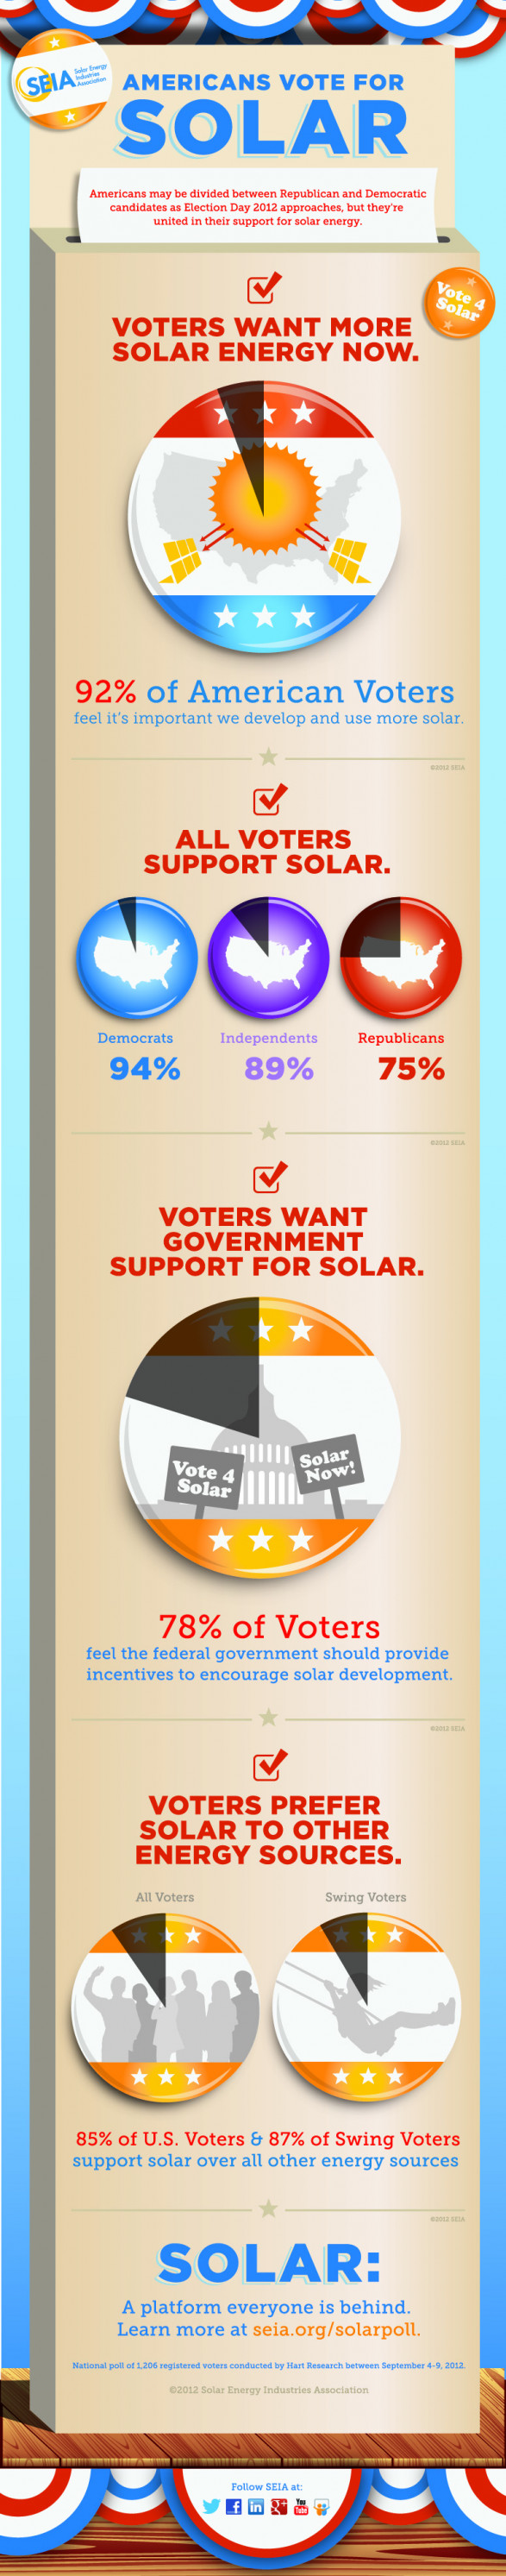 americans vote for solar 506a6a17b52e5 w587 90% of U.S Voters Want More Solar